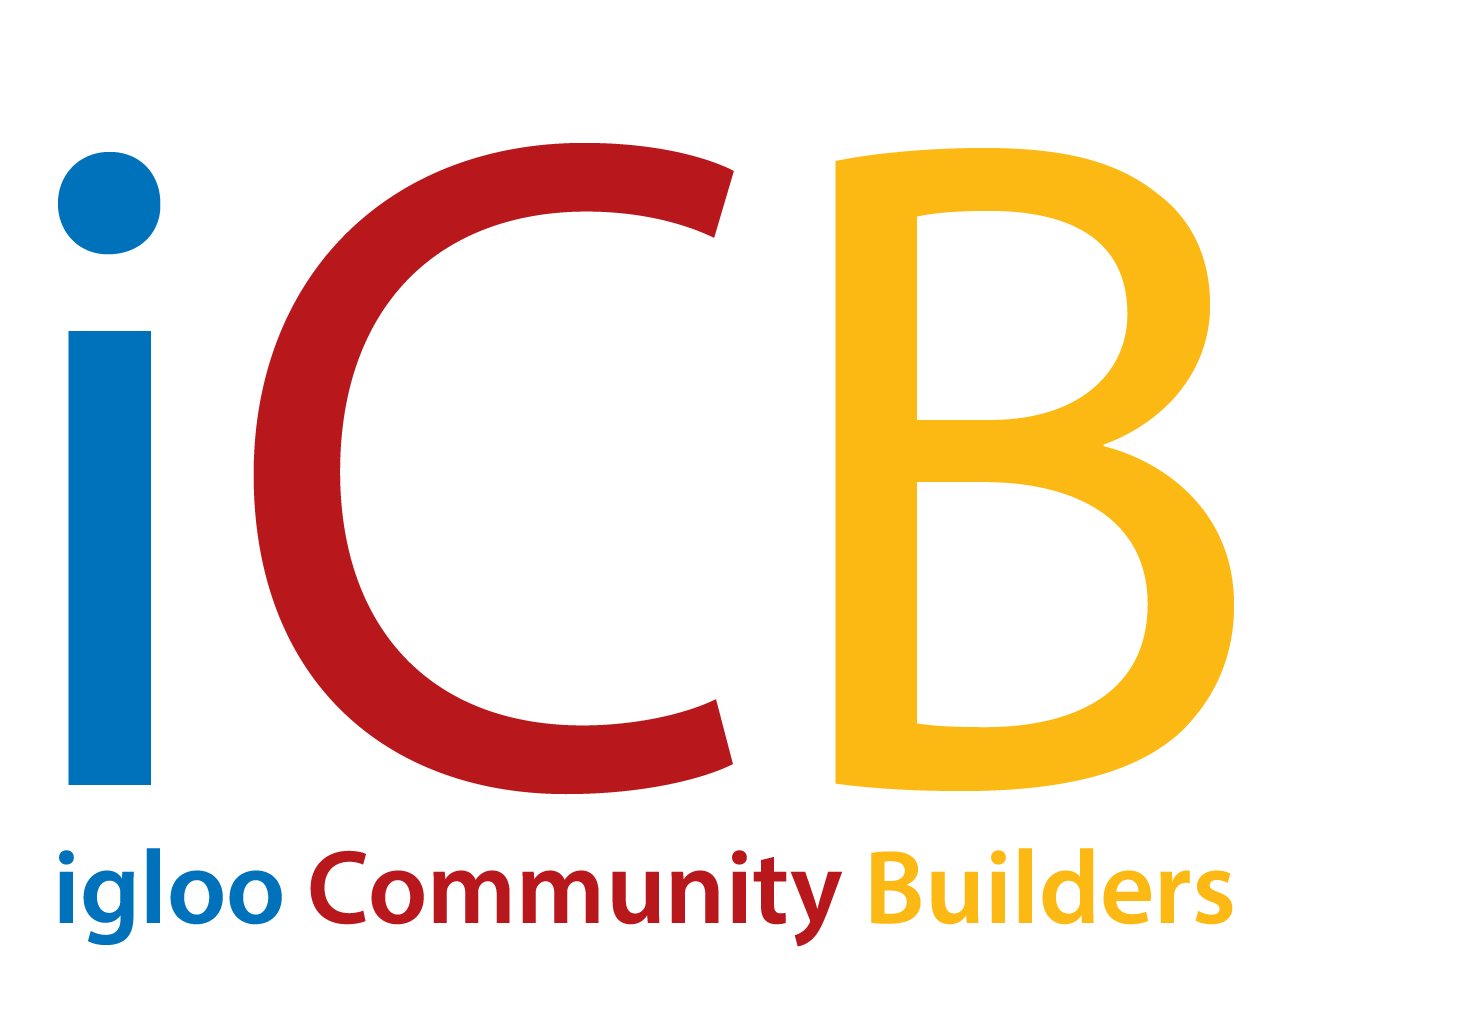 igloo Community Builders